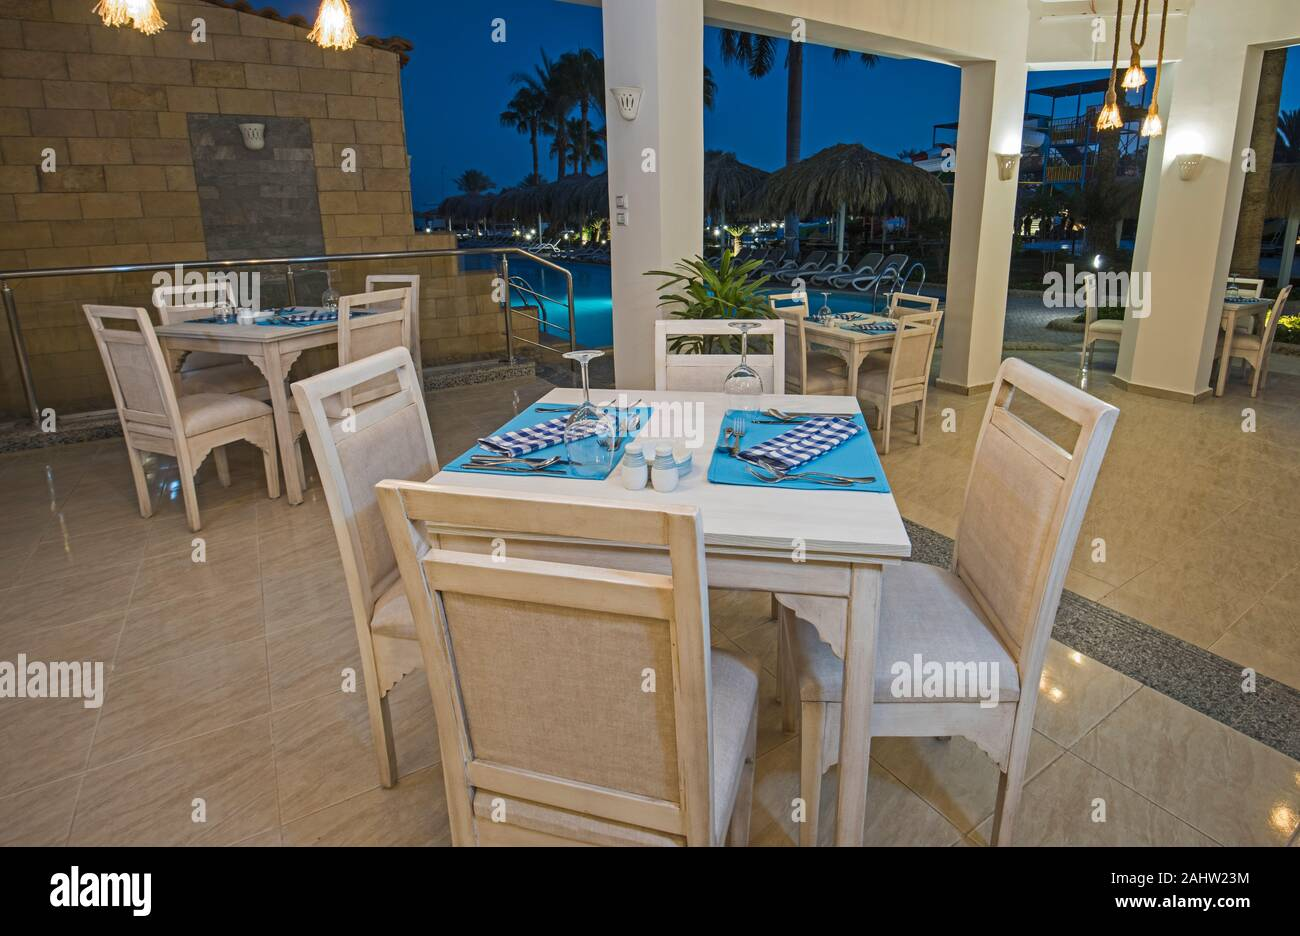 Interior Design Of A Luxury Hotel Restaurant Dining Area With Setting By Swimming Pool At Night Stock Photo Alamy